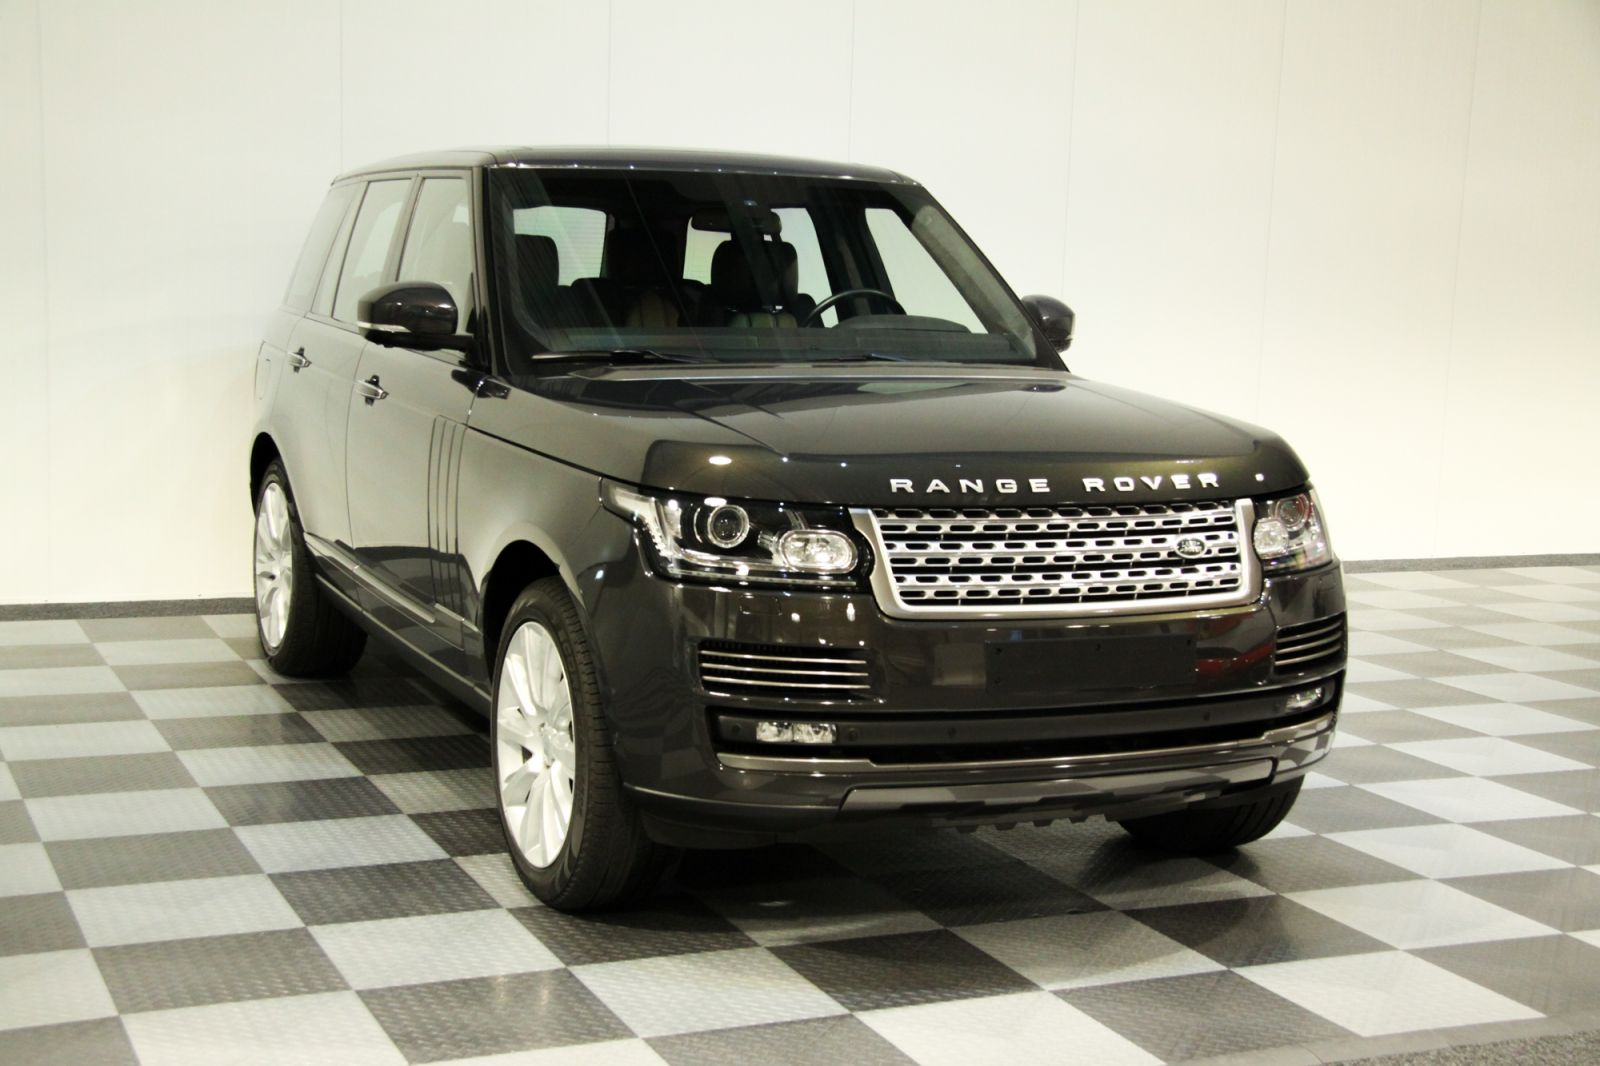 Dream garage sold carsland rover range rover for Land rover garage